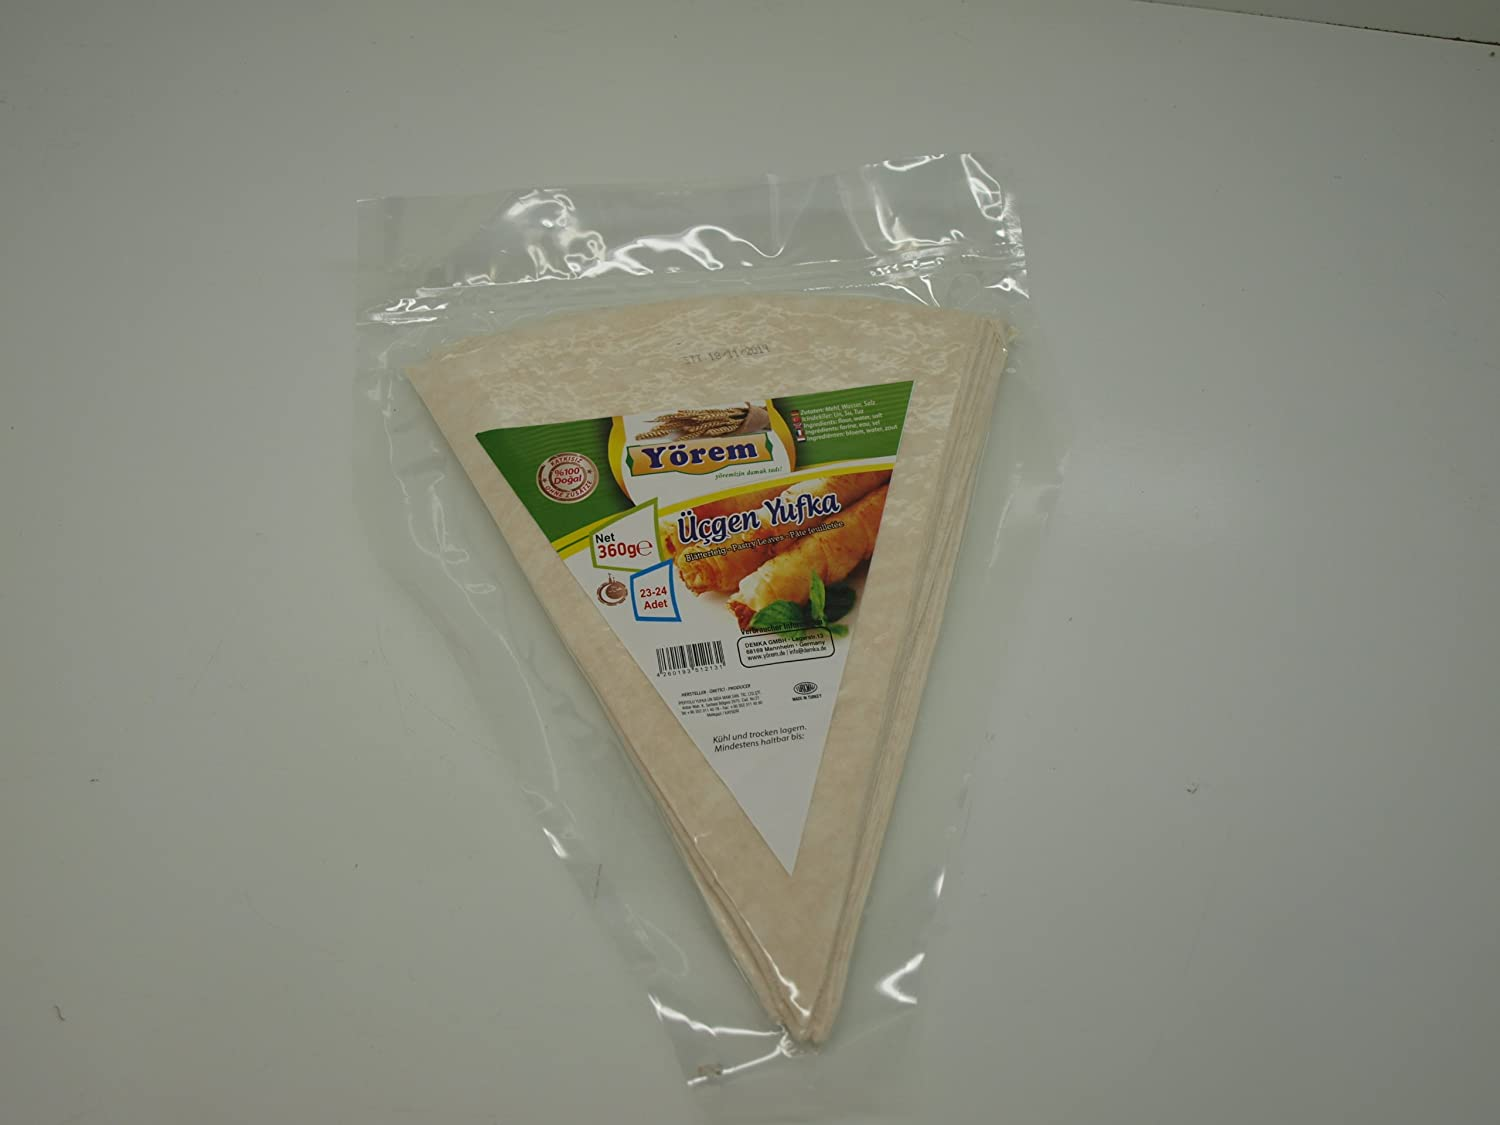 Pastry Leaves Yufka Triangle 2 Pieces Manufacturer regenerated product Pack 46 Recommendation -